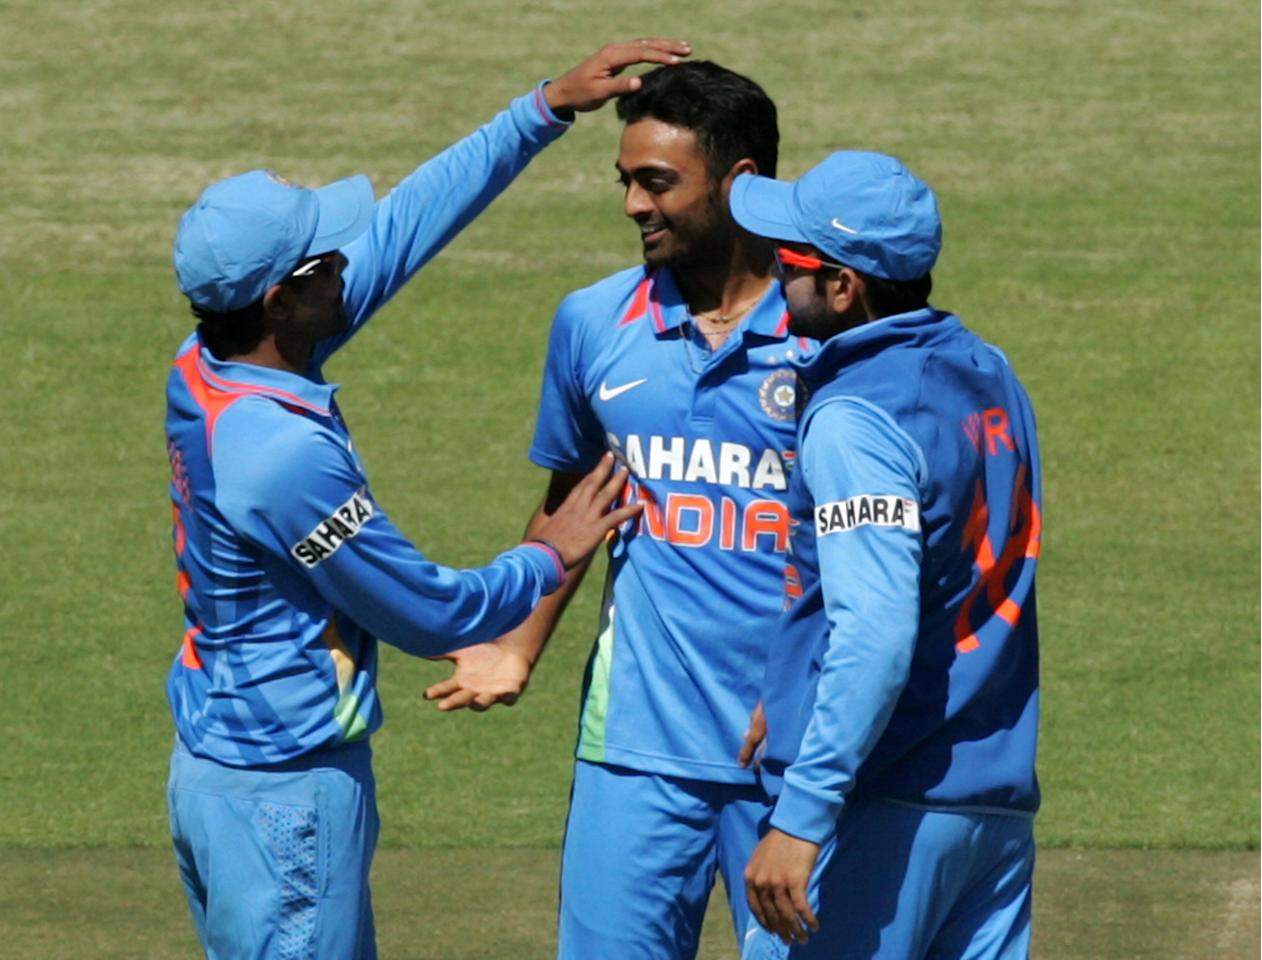 Indian bowler Shami Ahmed (C) celebrates a wicket with team mates during the first of five ODI series match between India and Zimbabwe at the Harare Sports Club on 24 July, 2013. AFP PHOTO / JEKESAI NJIKIZANA        (Photo credit should read JEKESAI NJIKIZANA/AFP/Getty Images)